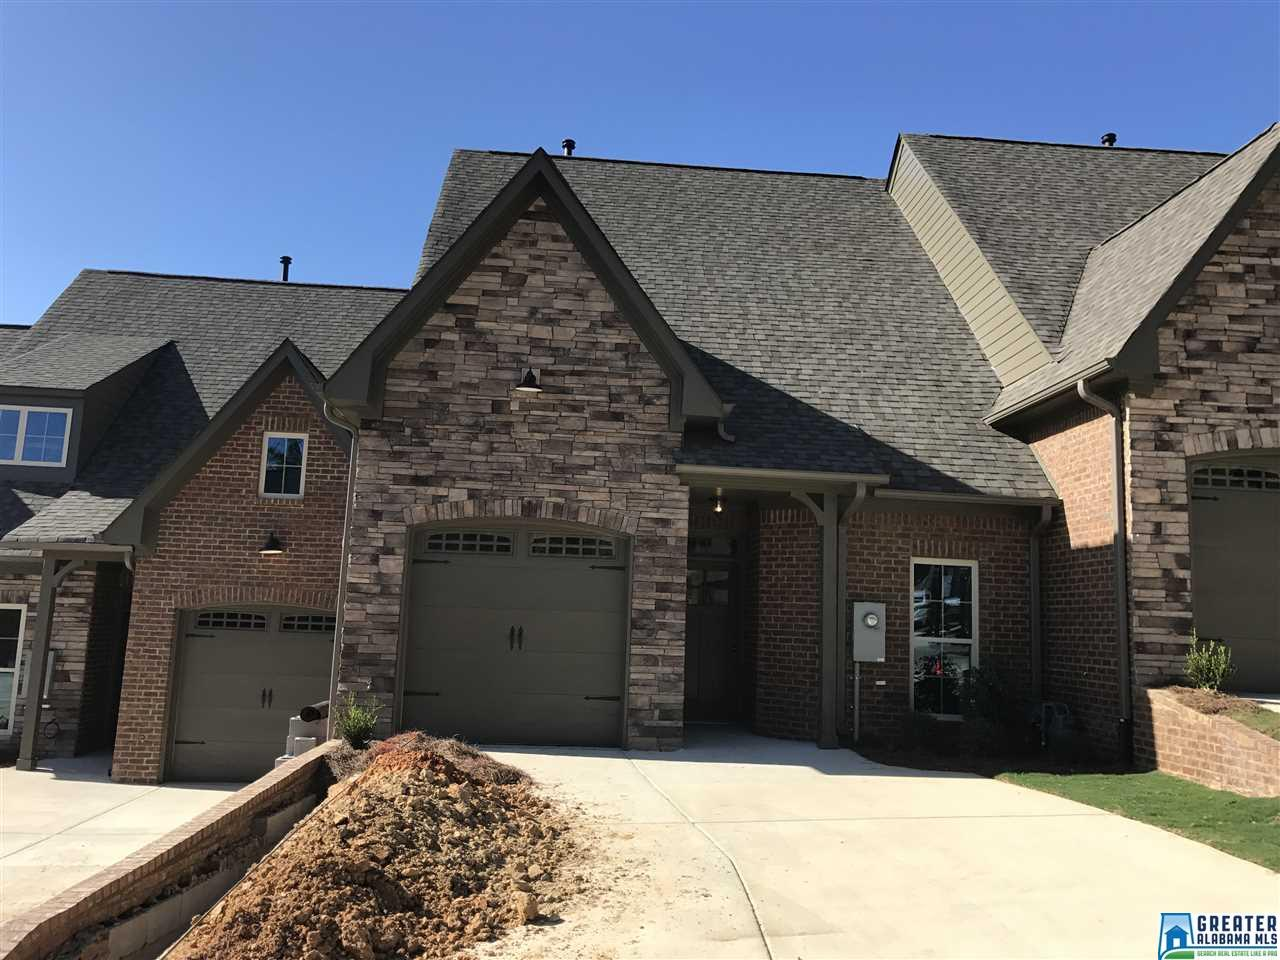 The Terraces at Grants Mill - New Townhomes 788299